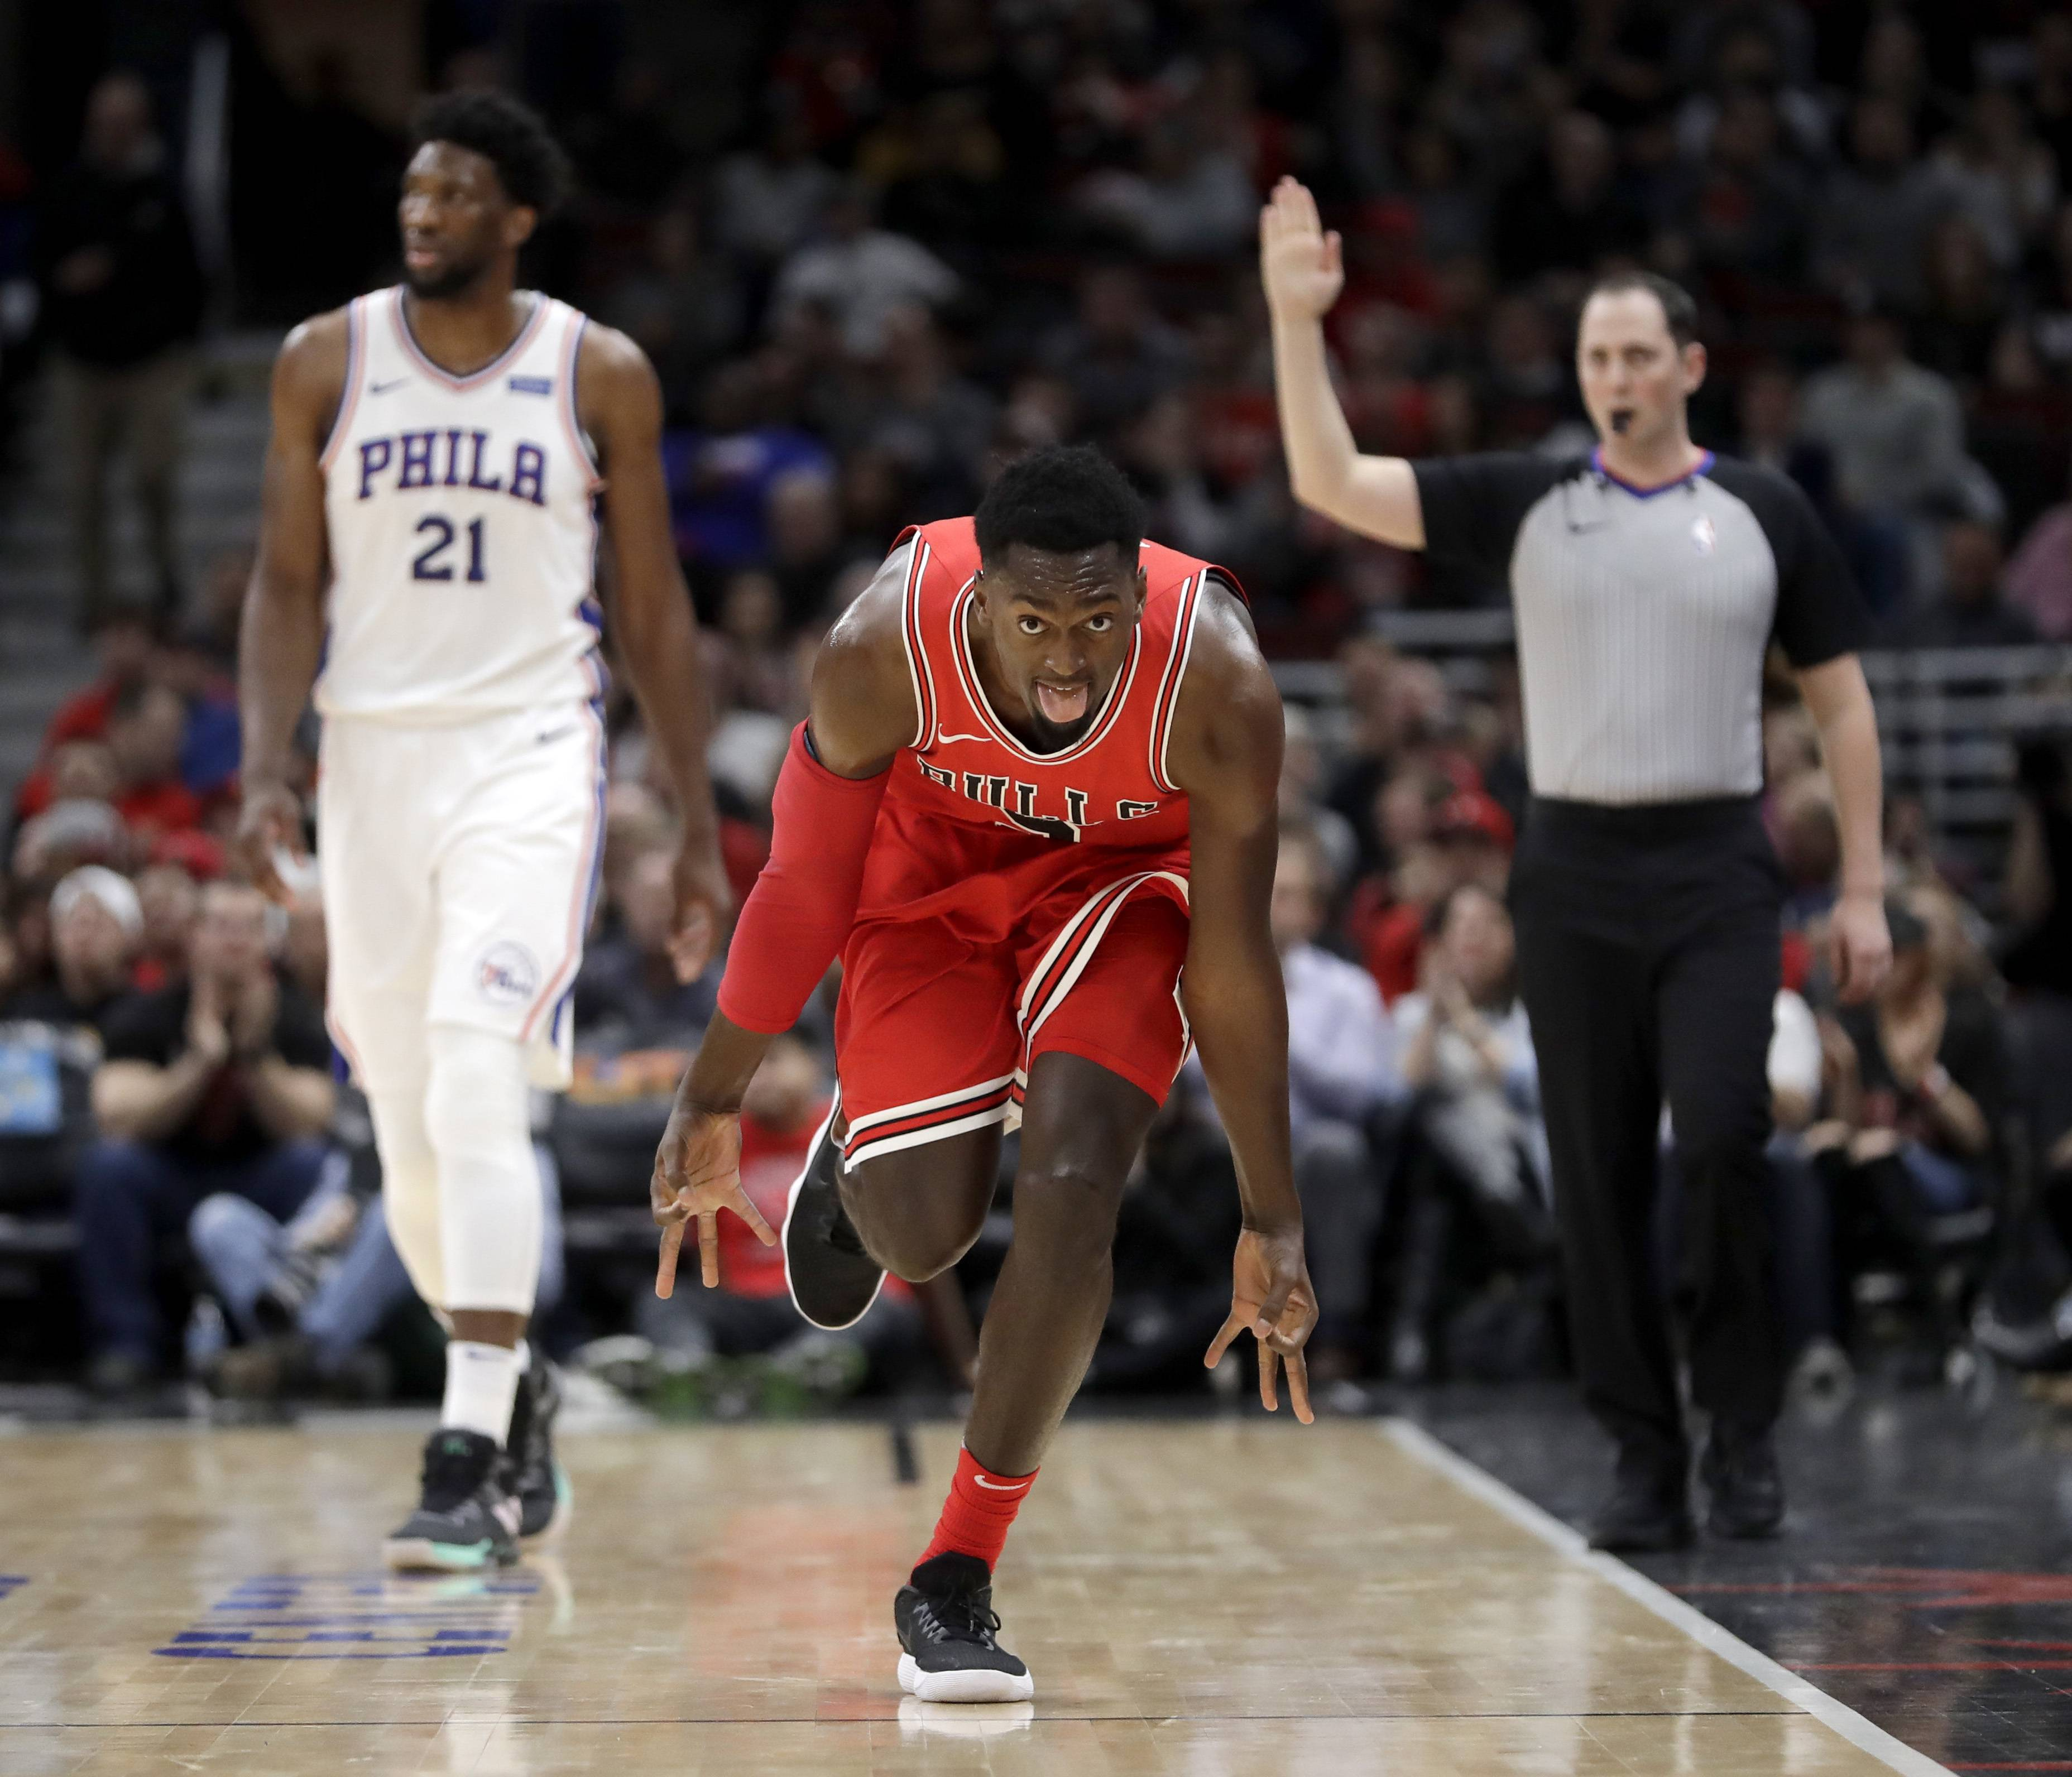 After a wrong turn, Portis puts his edgy style to good use for Bulls